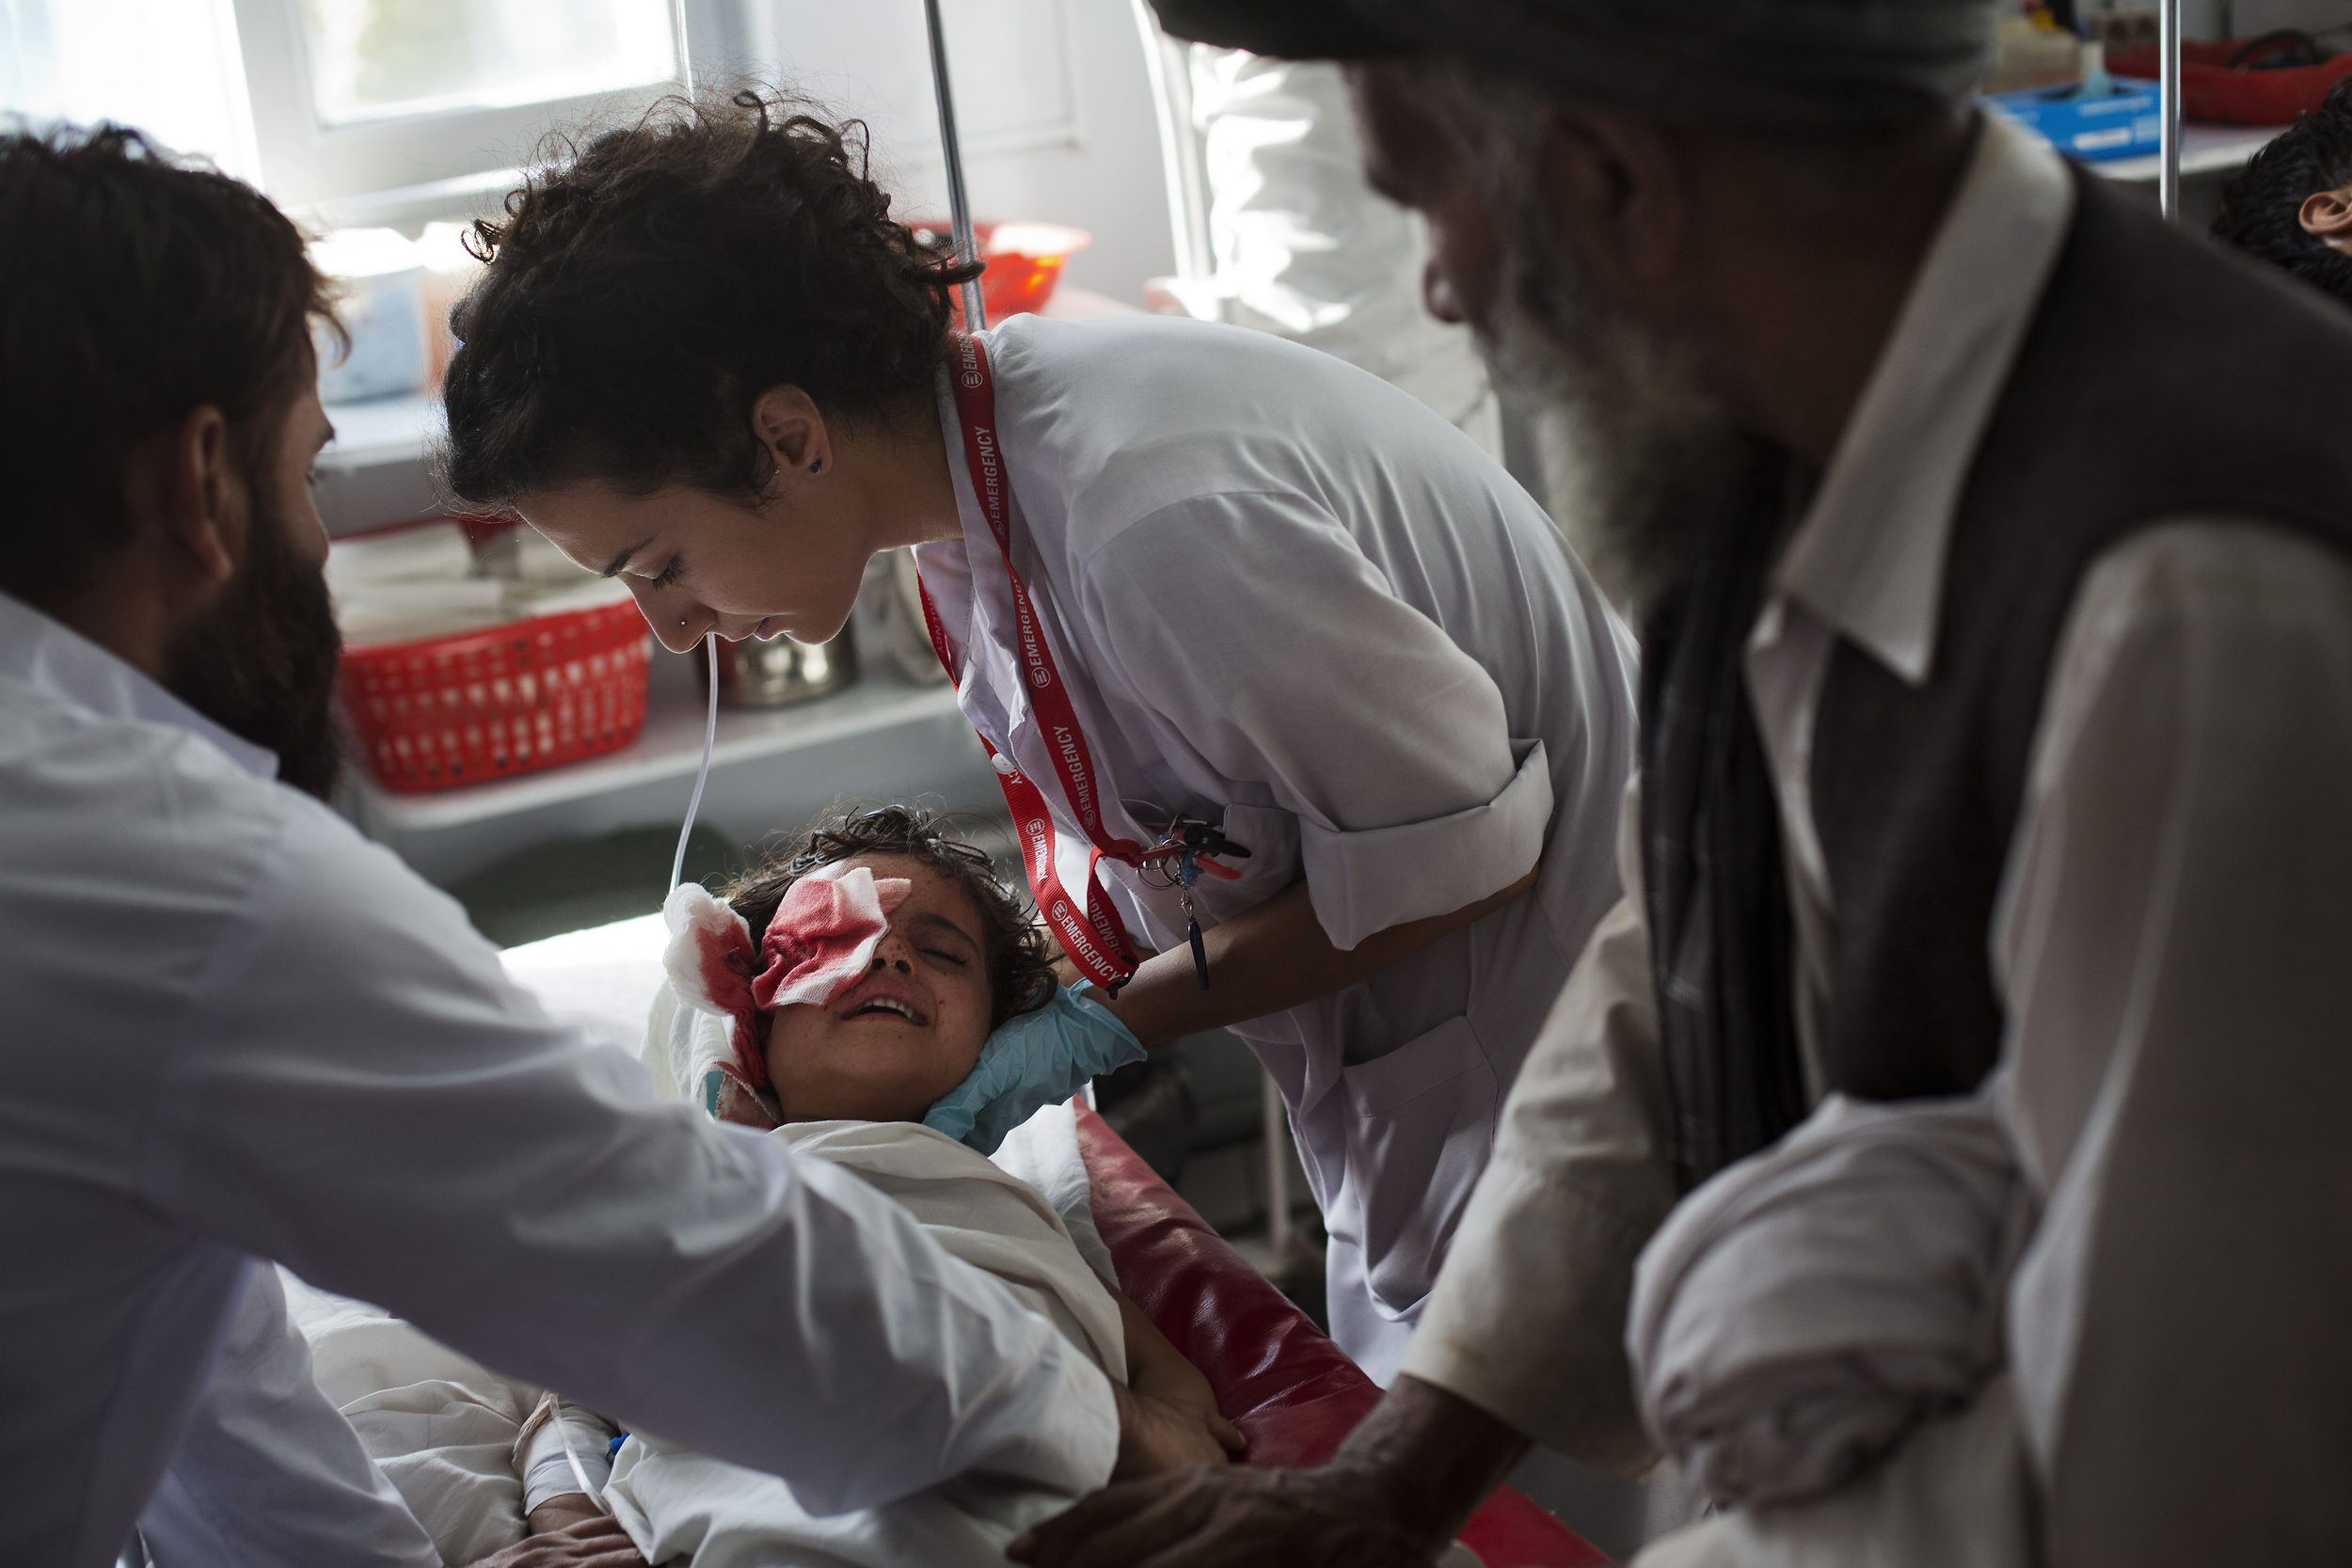 Head nurse Tijana Maričīć cradles the head of Nadia, 6, from Lalandar, a village outside of Kabul, who lost her eye and much of the side of her face playing with an unexploded munition